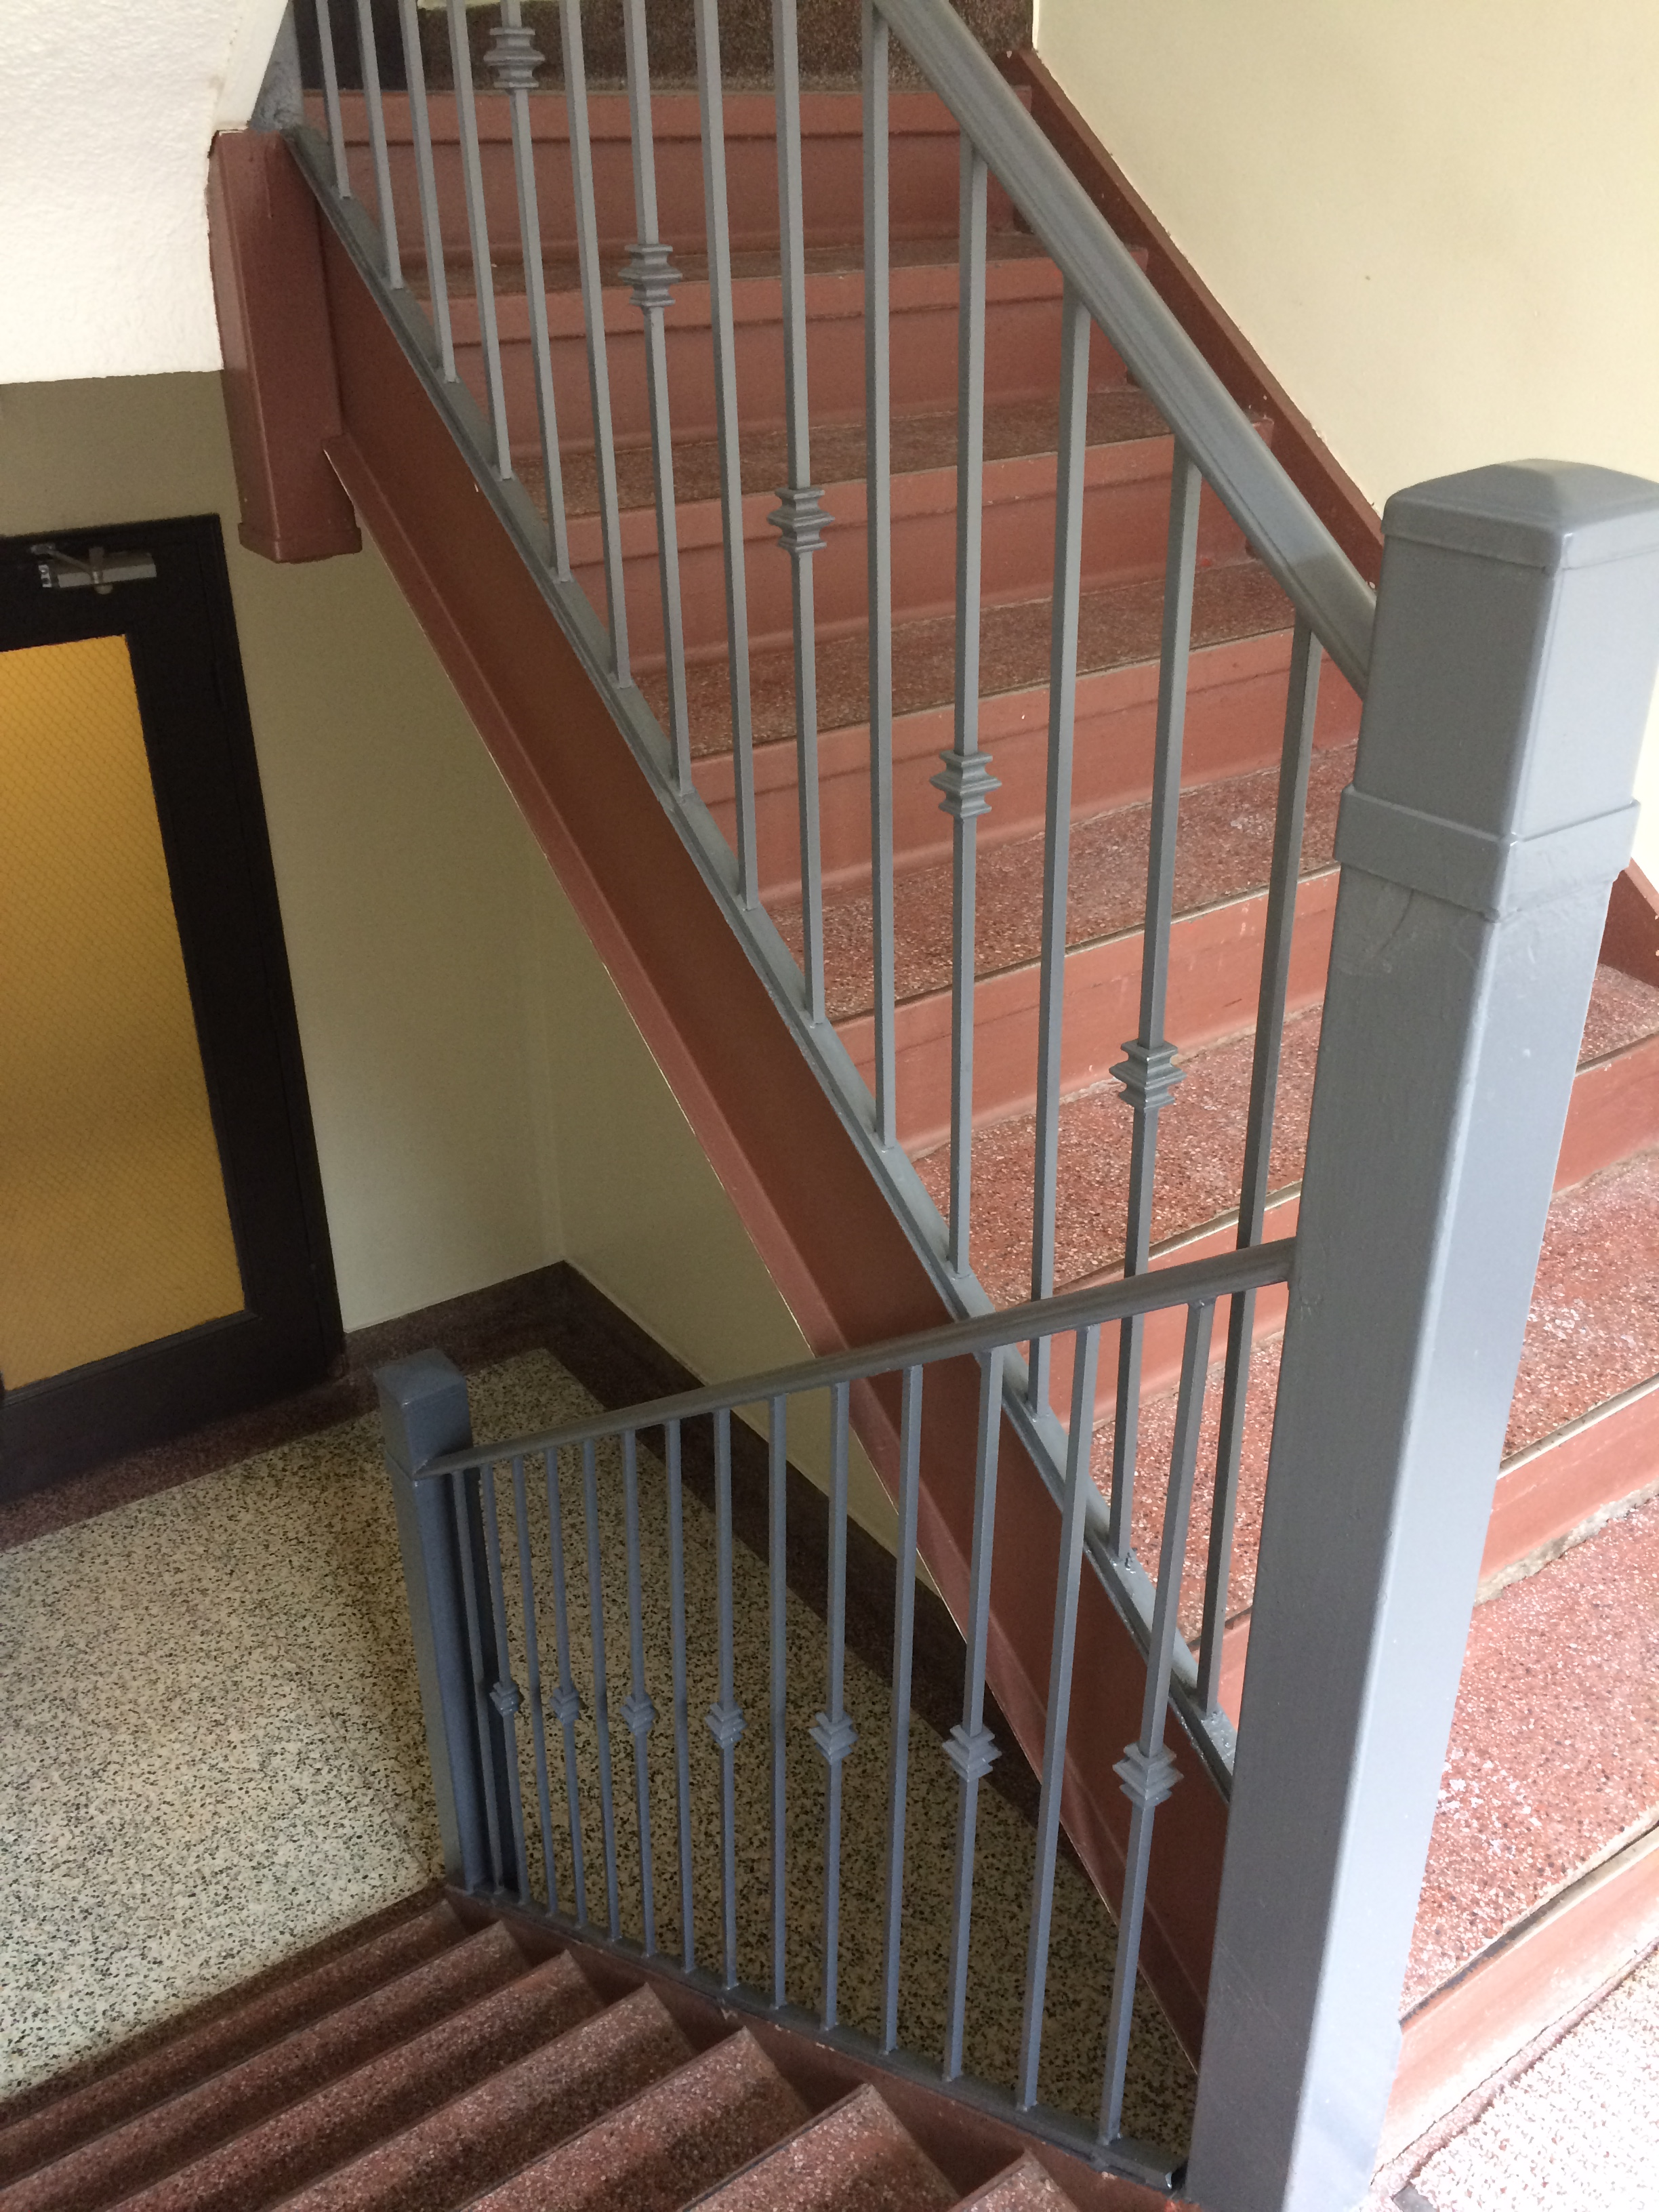 calgary ac systems handrails railings interior spotlight deck gallery handrail glass services exterior